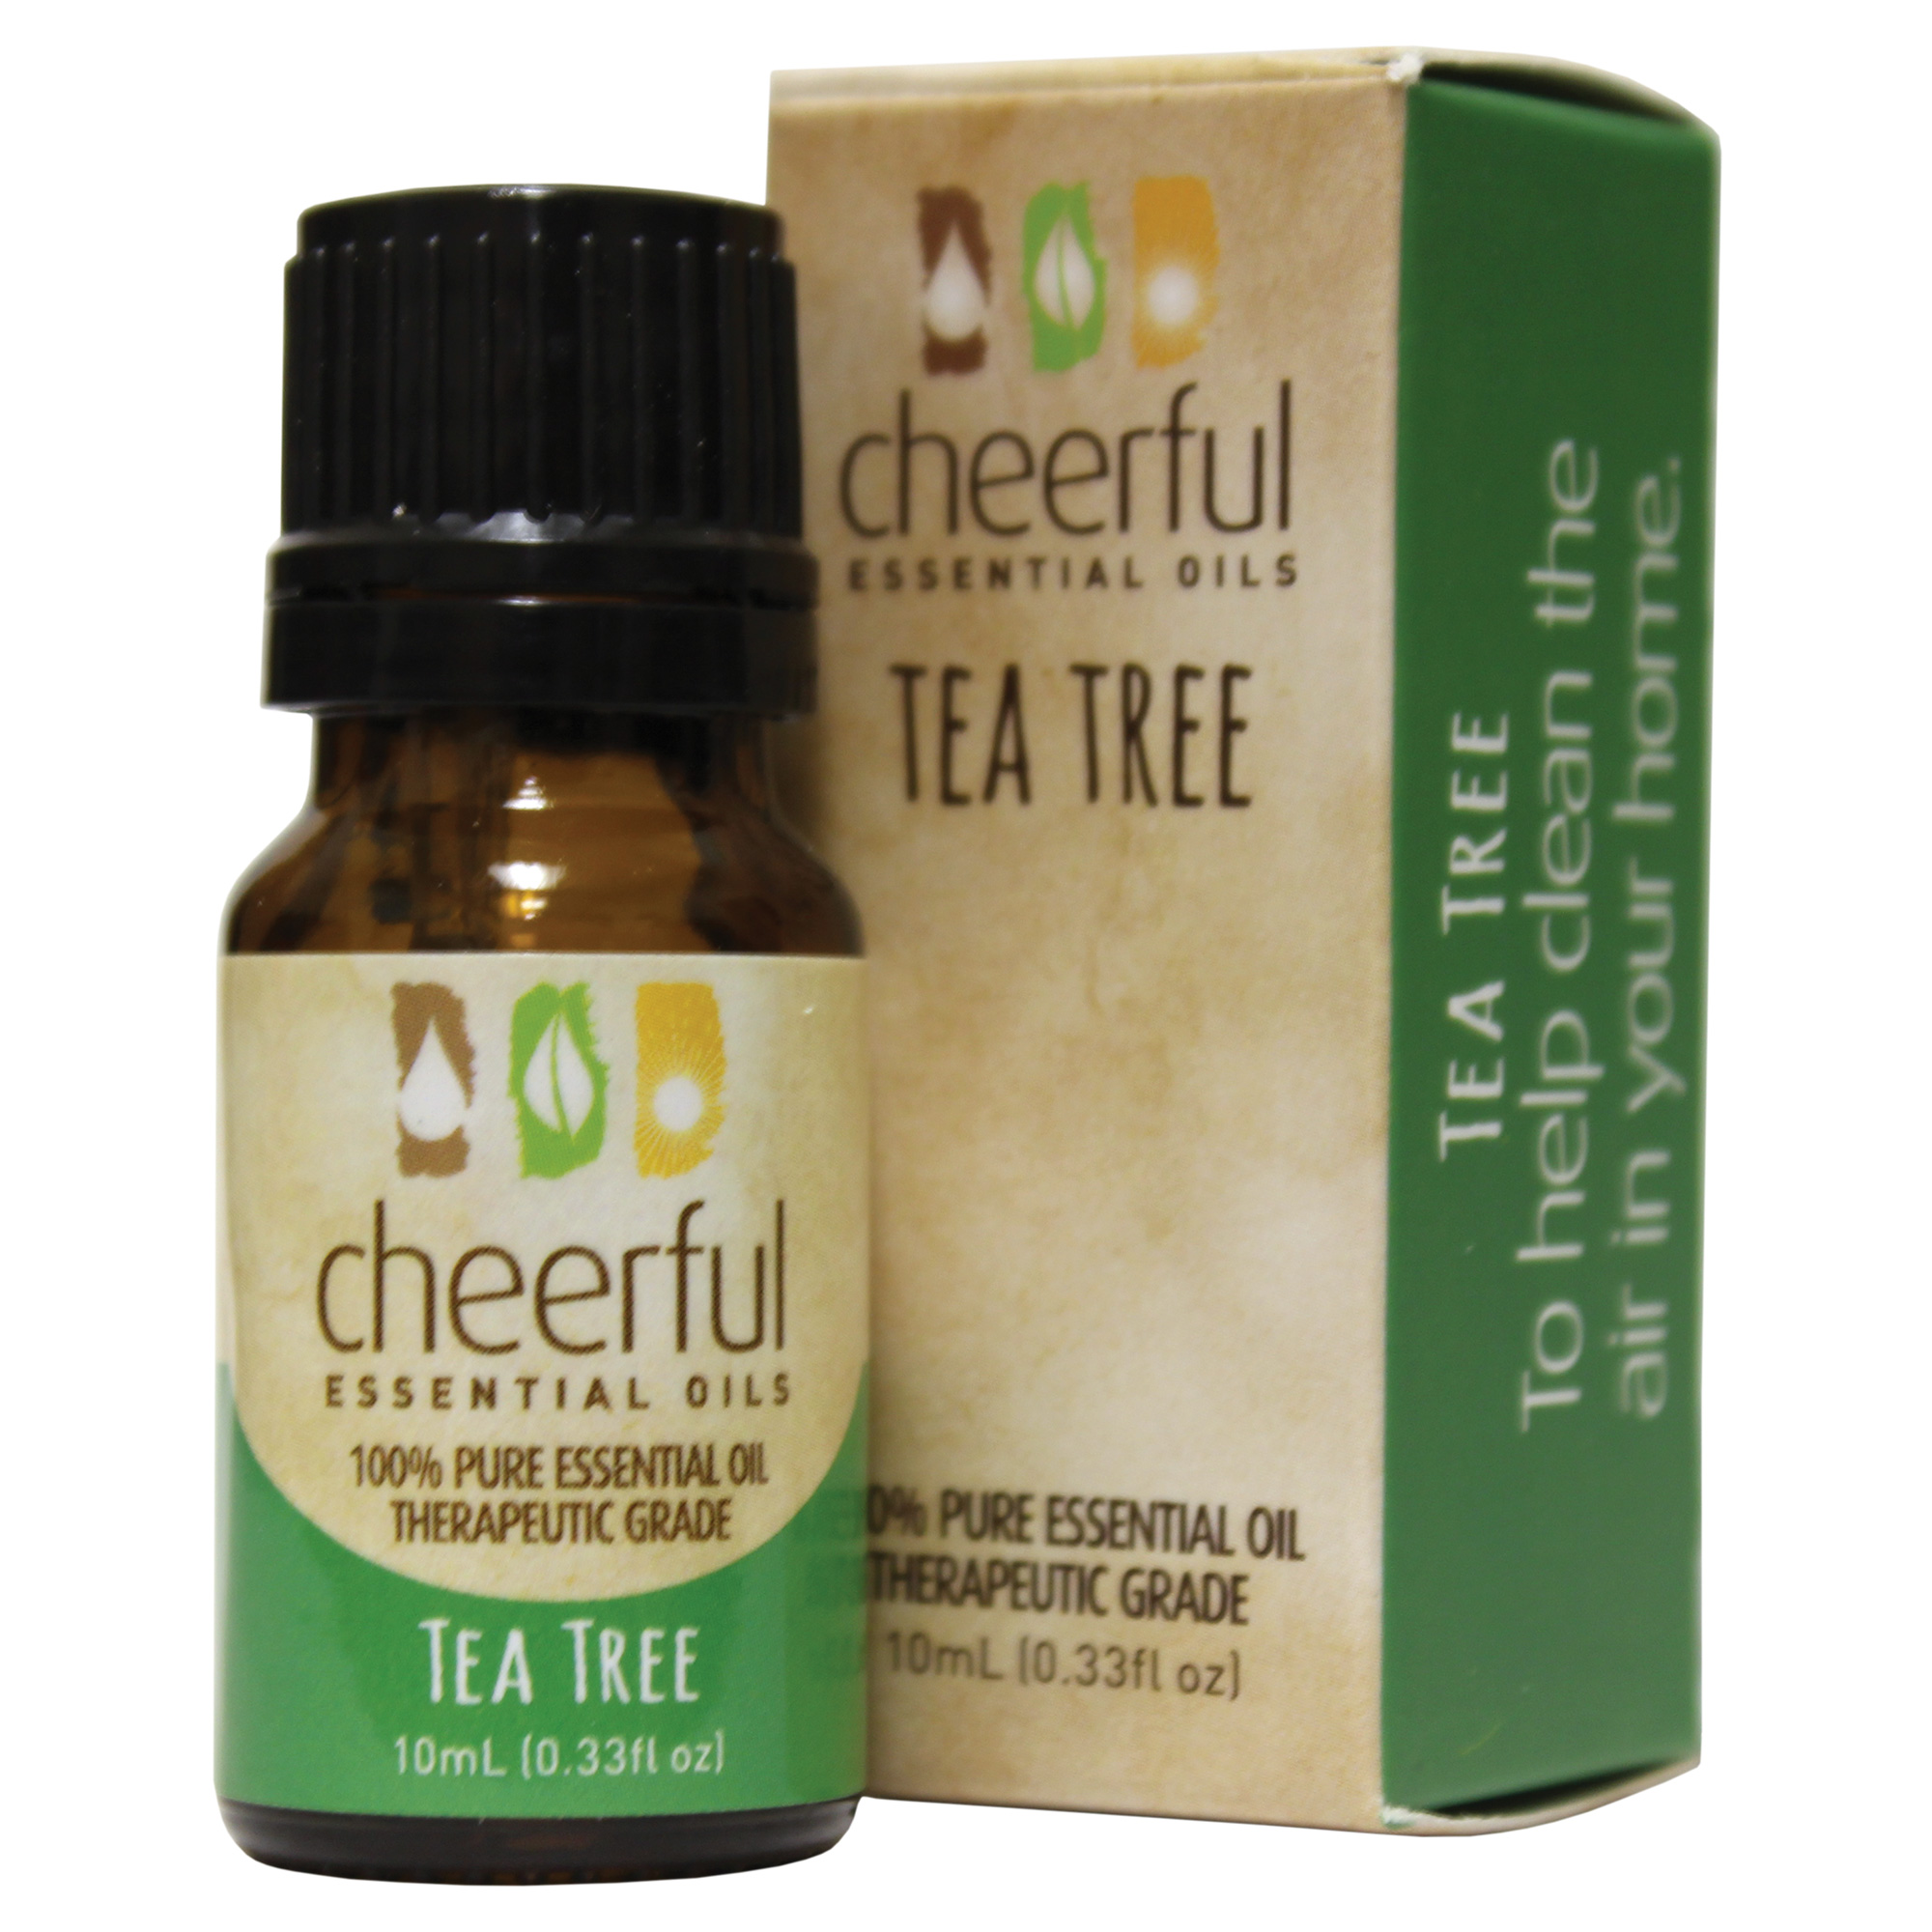 TEA TREE ESSENTIAL OIL 10 ML UPC# 674623018126